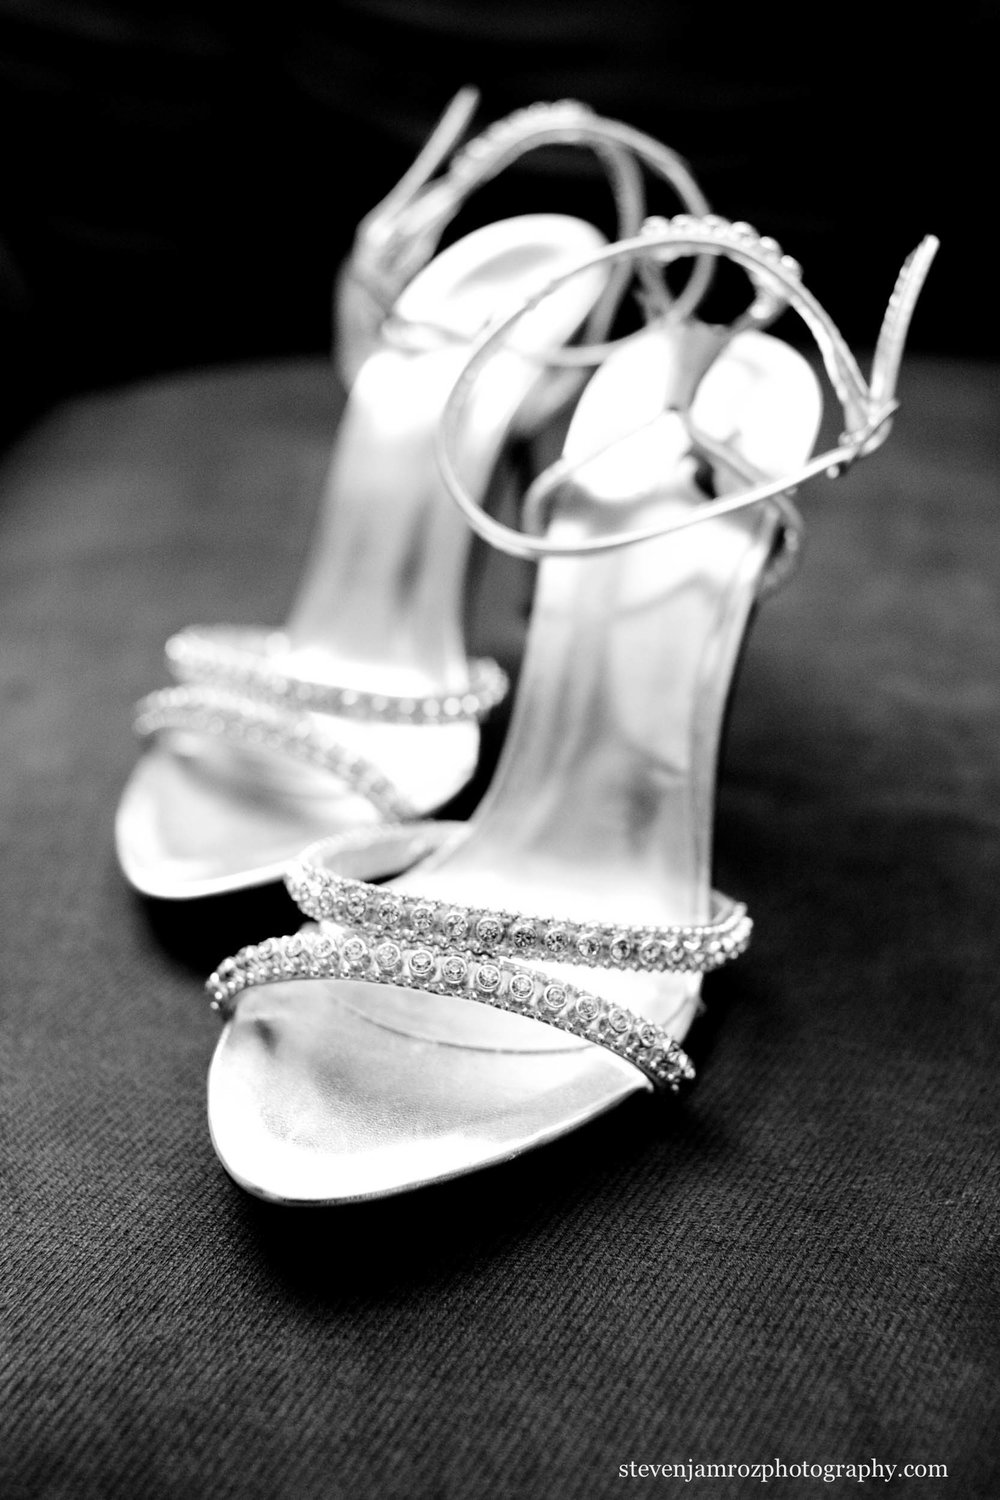 pretty-wedding-shoes-raleigh-steven-jamroz-photography-0227.jpg